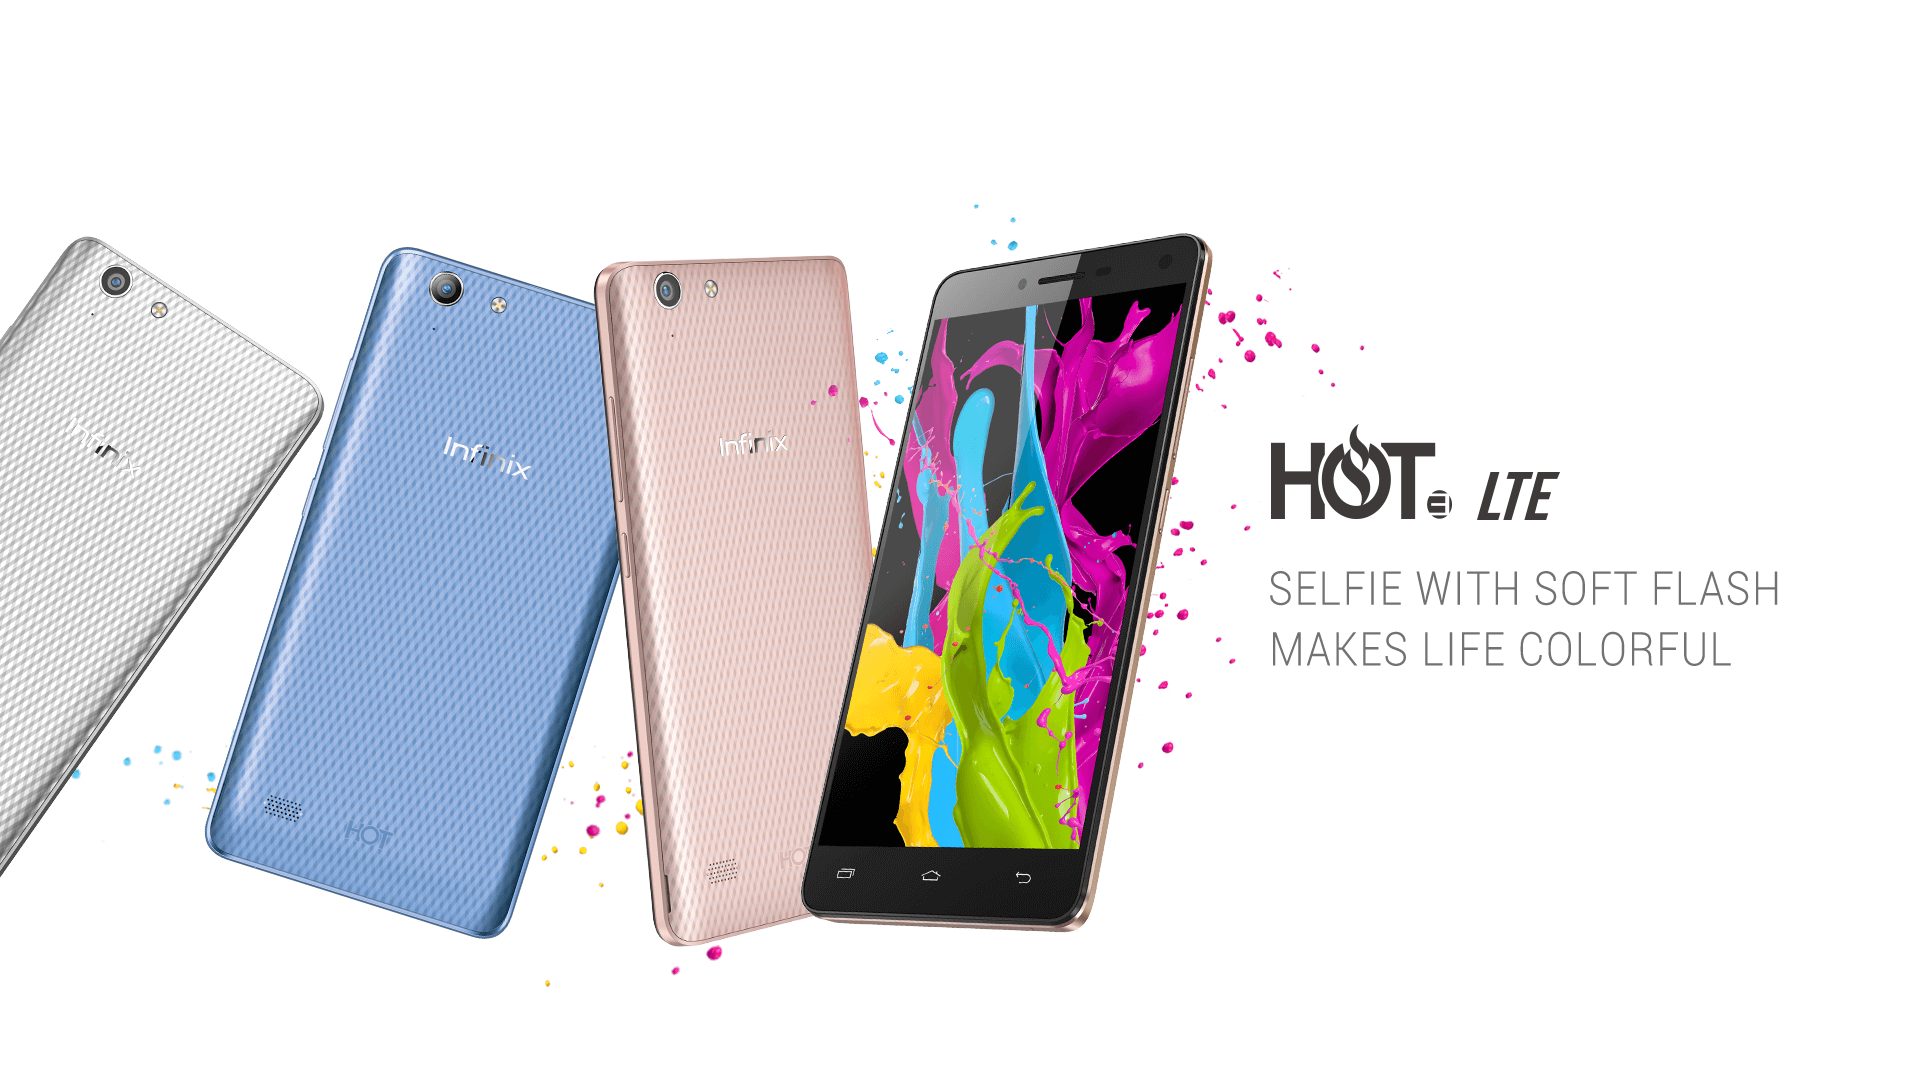 Infinix Hot 3 lte android